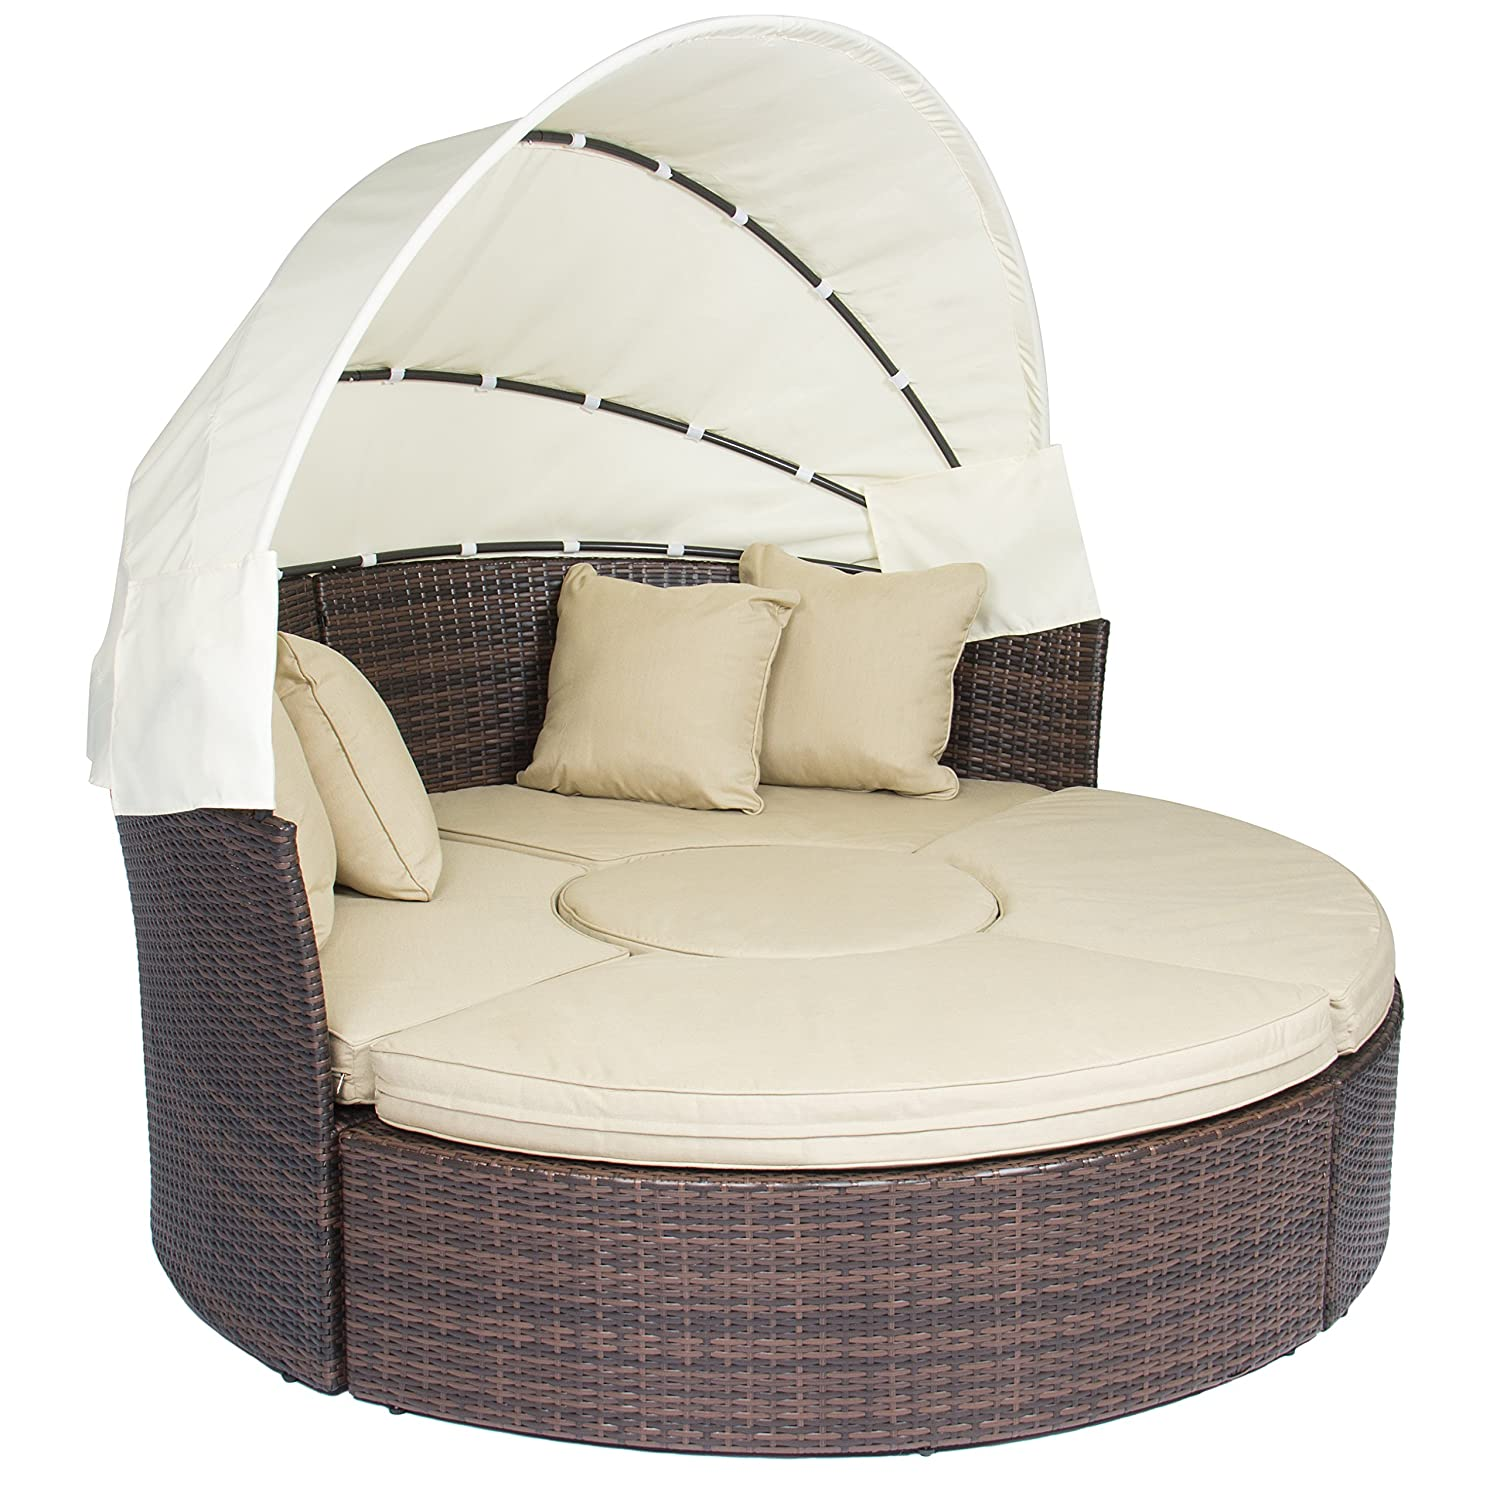 Amazon.com : Best Choice Products Retractable Canopy Wicker Daybed ...